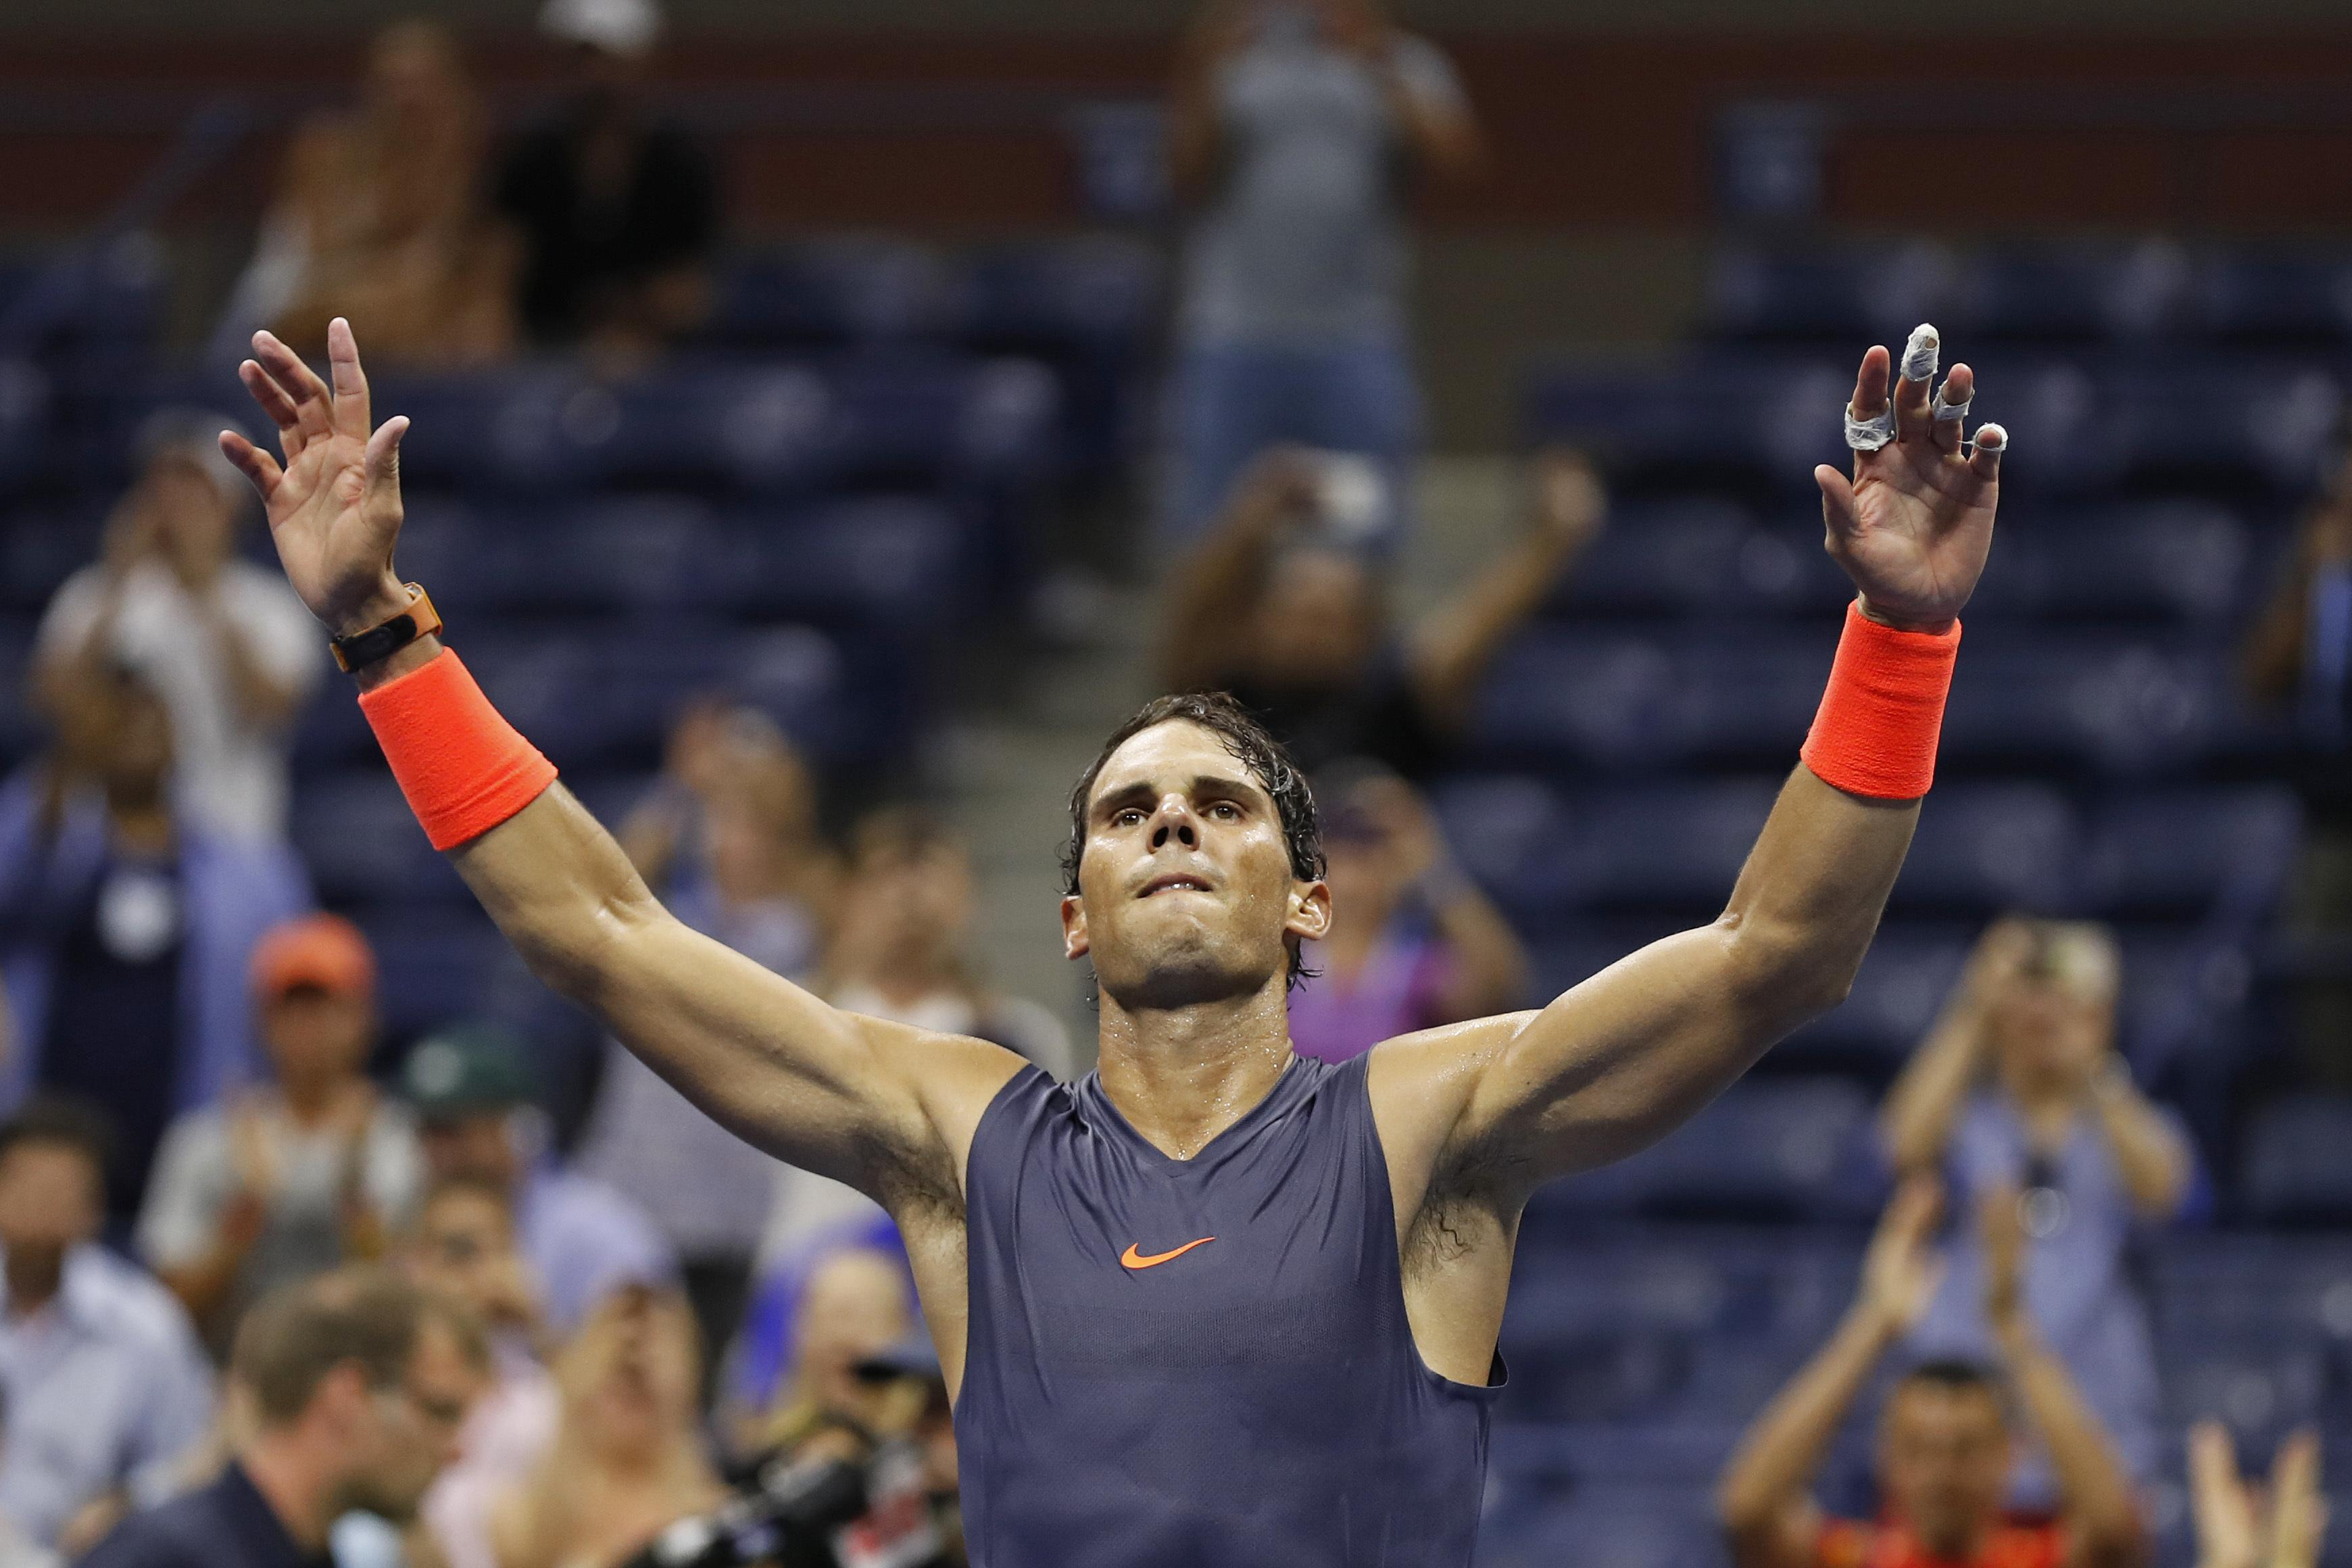 Rafa Nadal is into the US Open semi-finals after a thrilling five-set victory